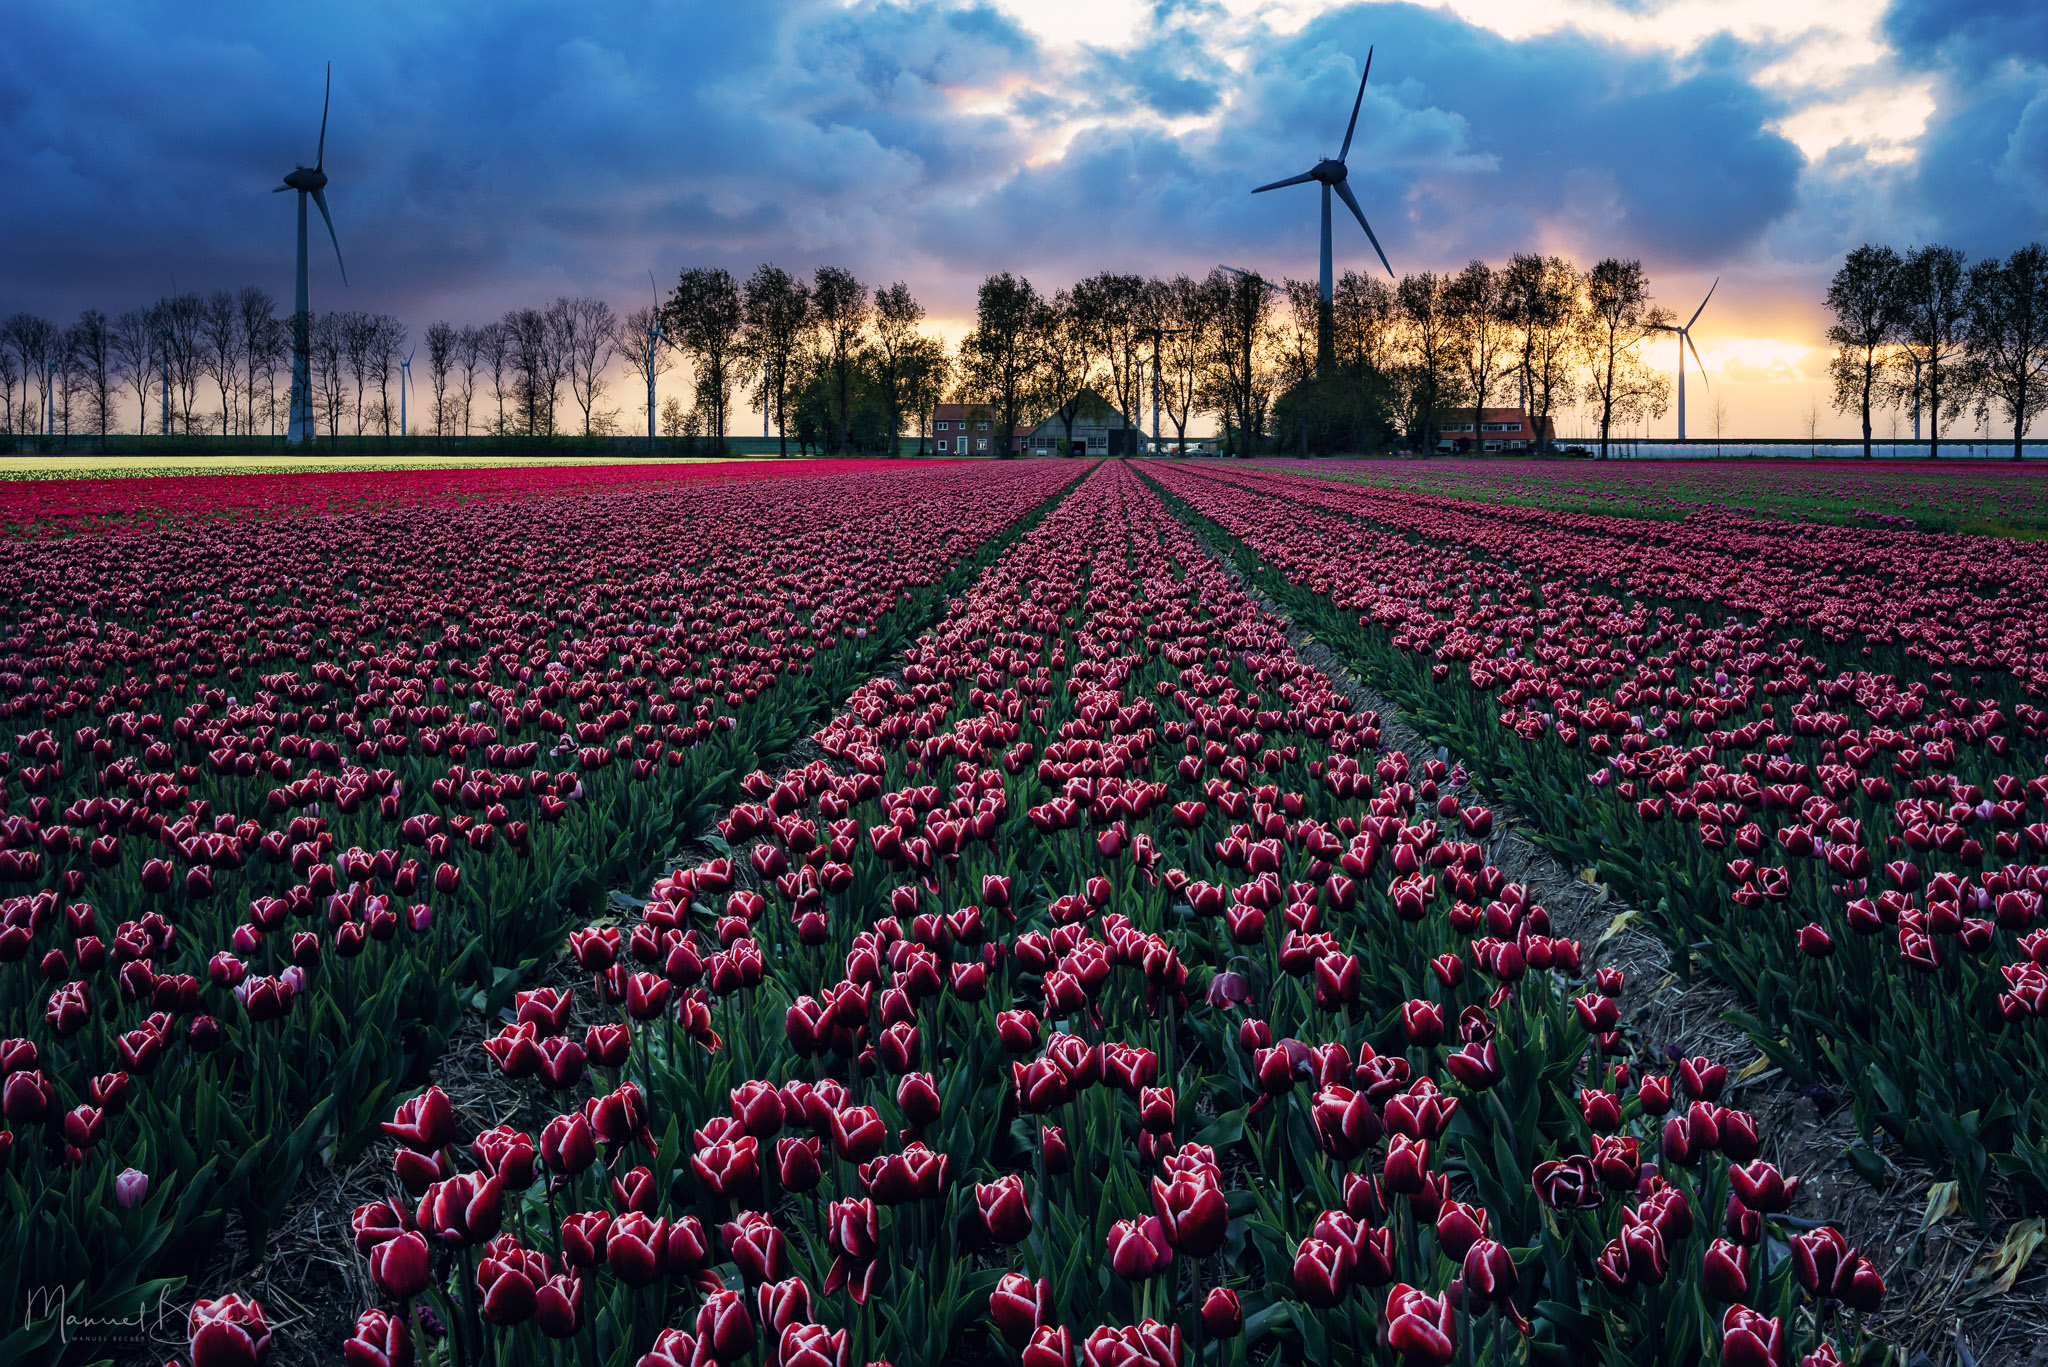 Tulip fields near Espel, Netherlands